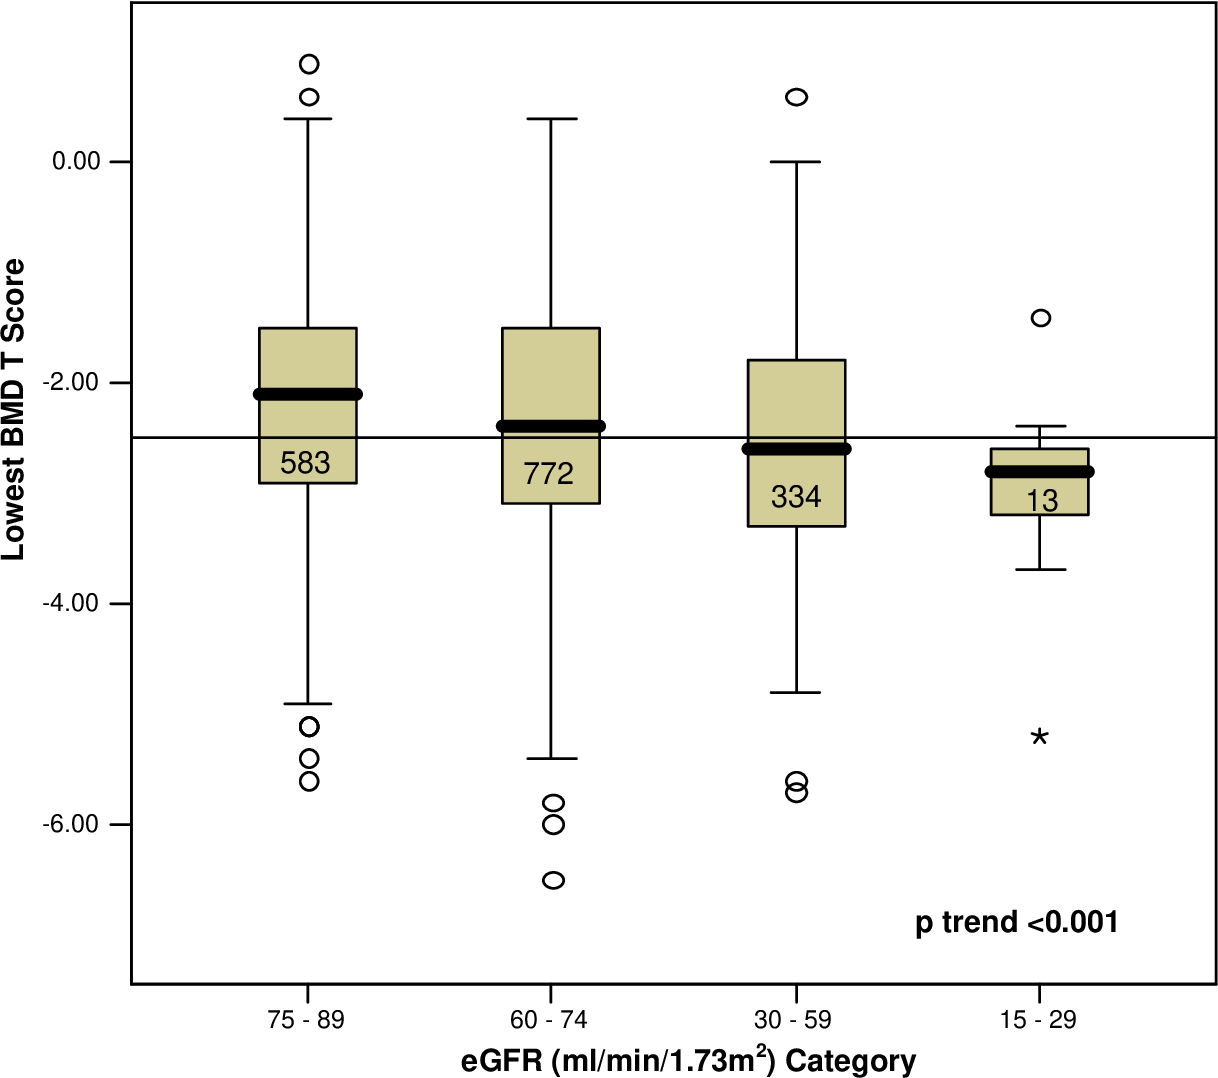 Figure 2.2: Box plot of lowest measured Bone Mineral Density by MDRD eGFR category.